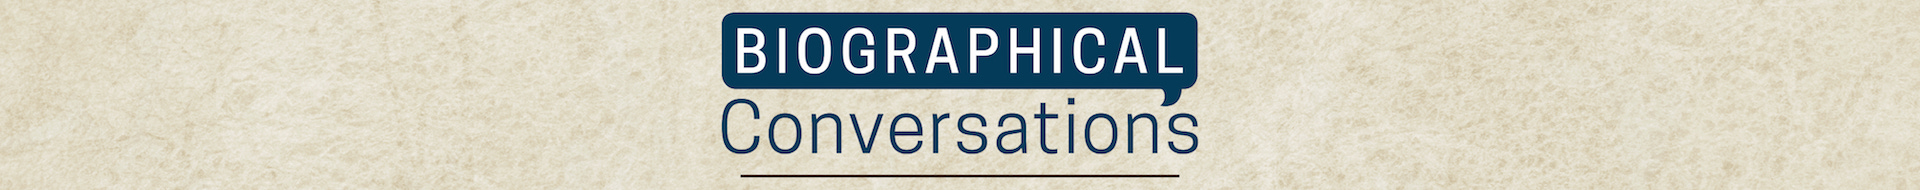 Biographical Conversation Logo Banner